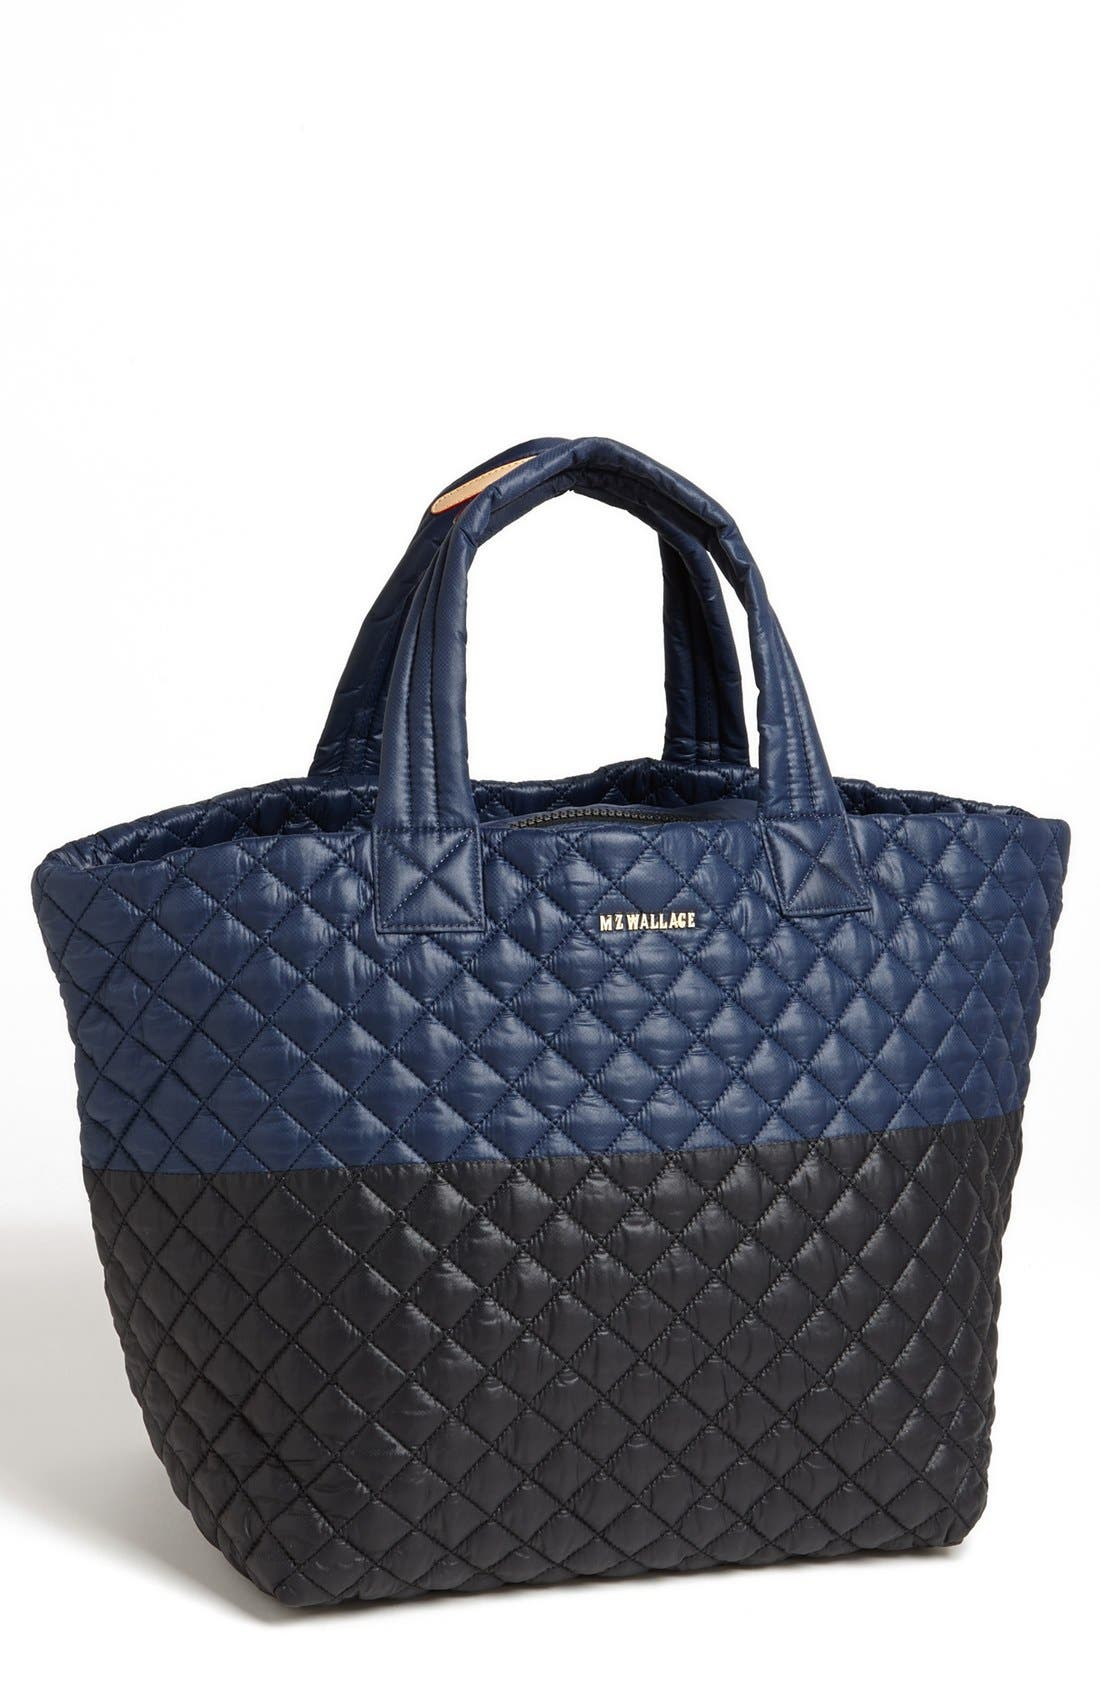 MZ WALLACE Large Metro Quilted Tote